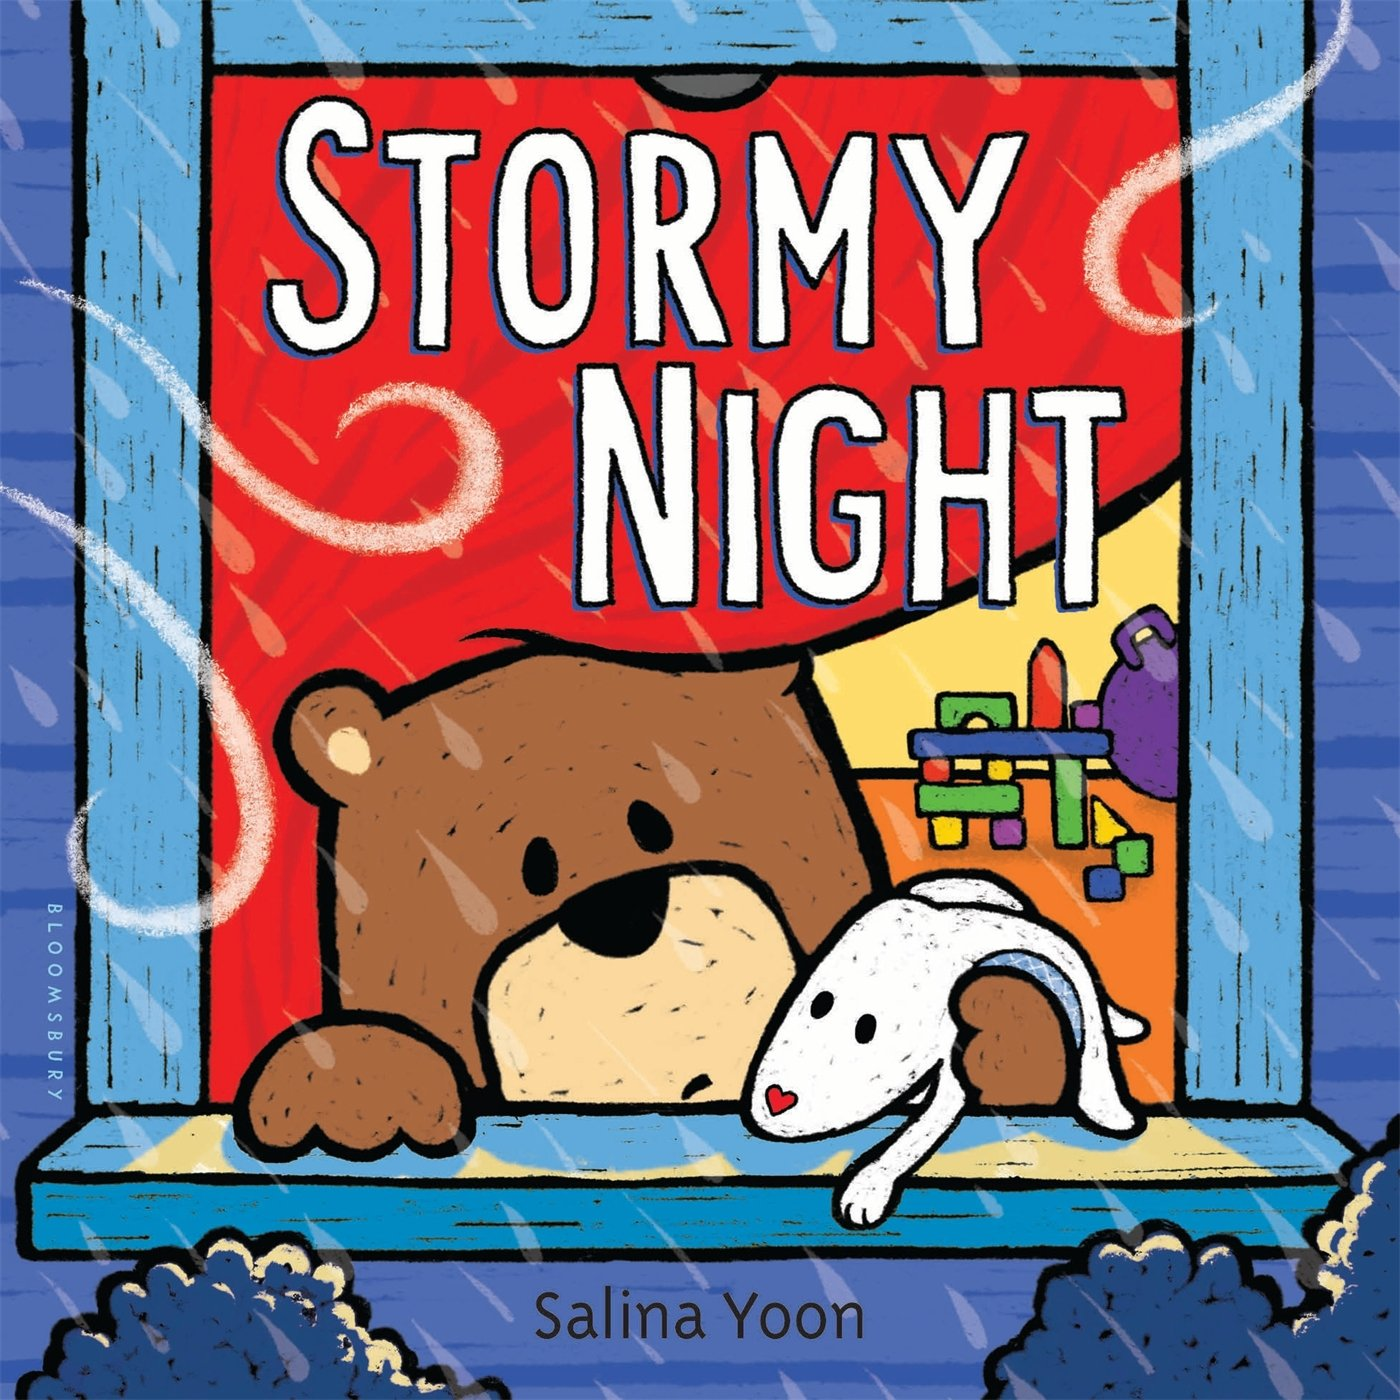 Stormy Night by Salina Yoon